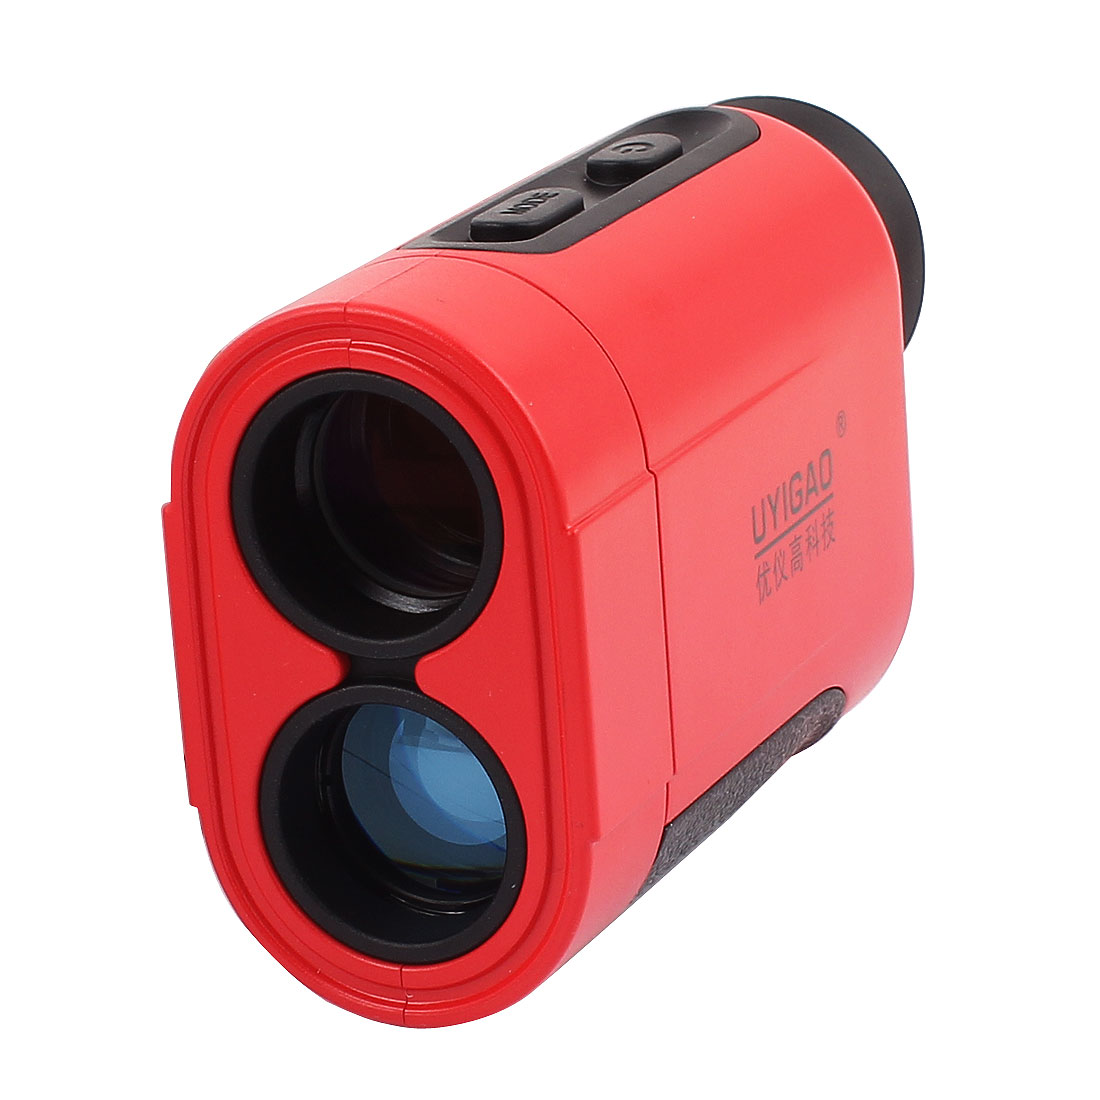 UYIGAO Authorized Outdoor Travel Handheld Dual Objective Lens Scan Mode Monocular Rangefinder 6X Magnification 600M